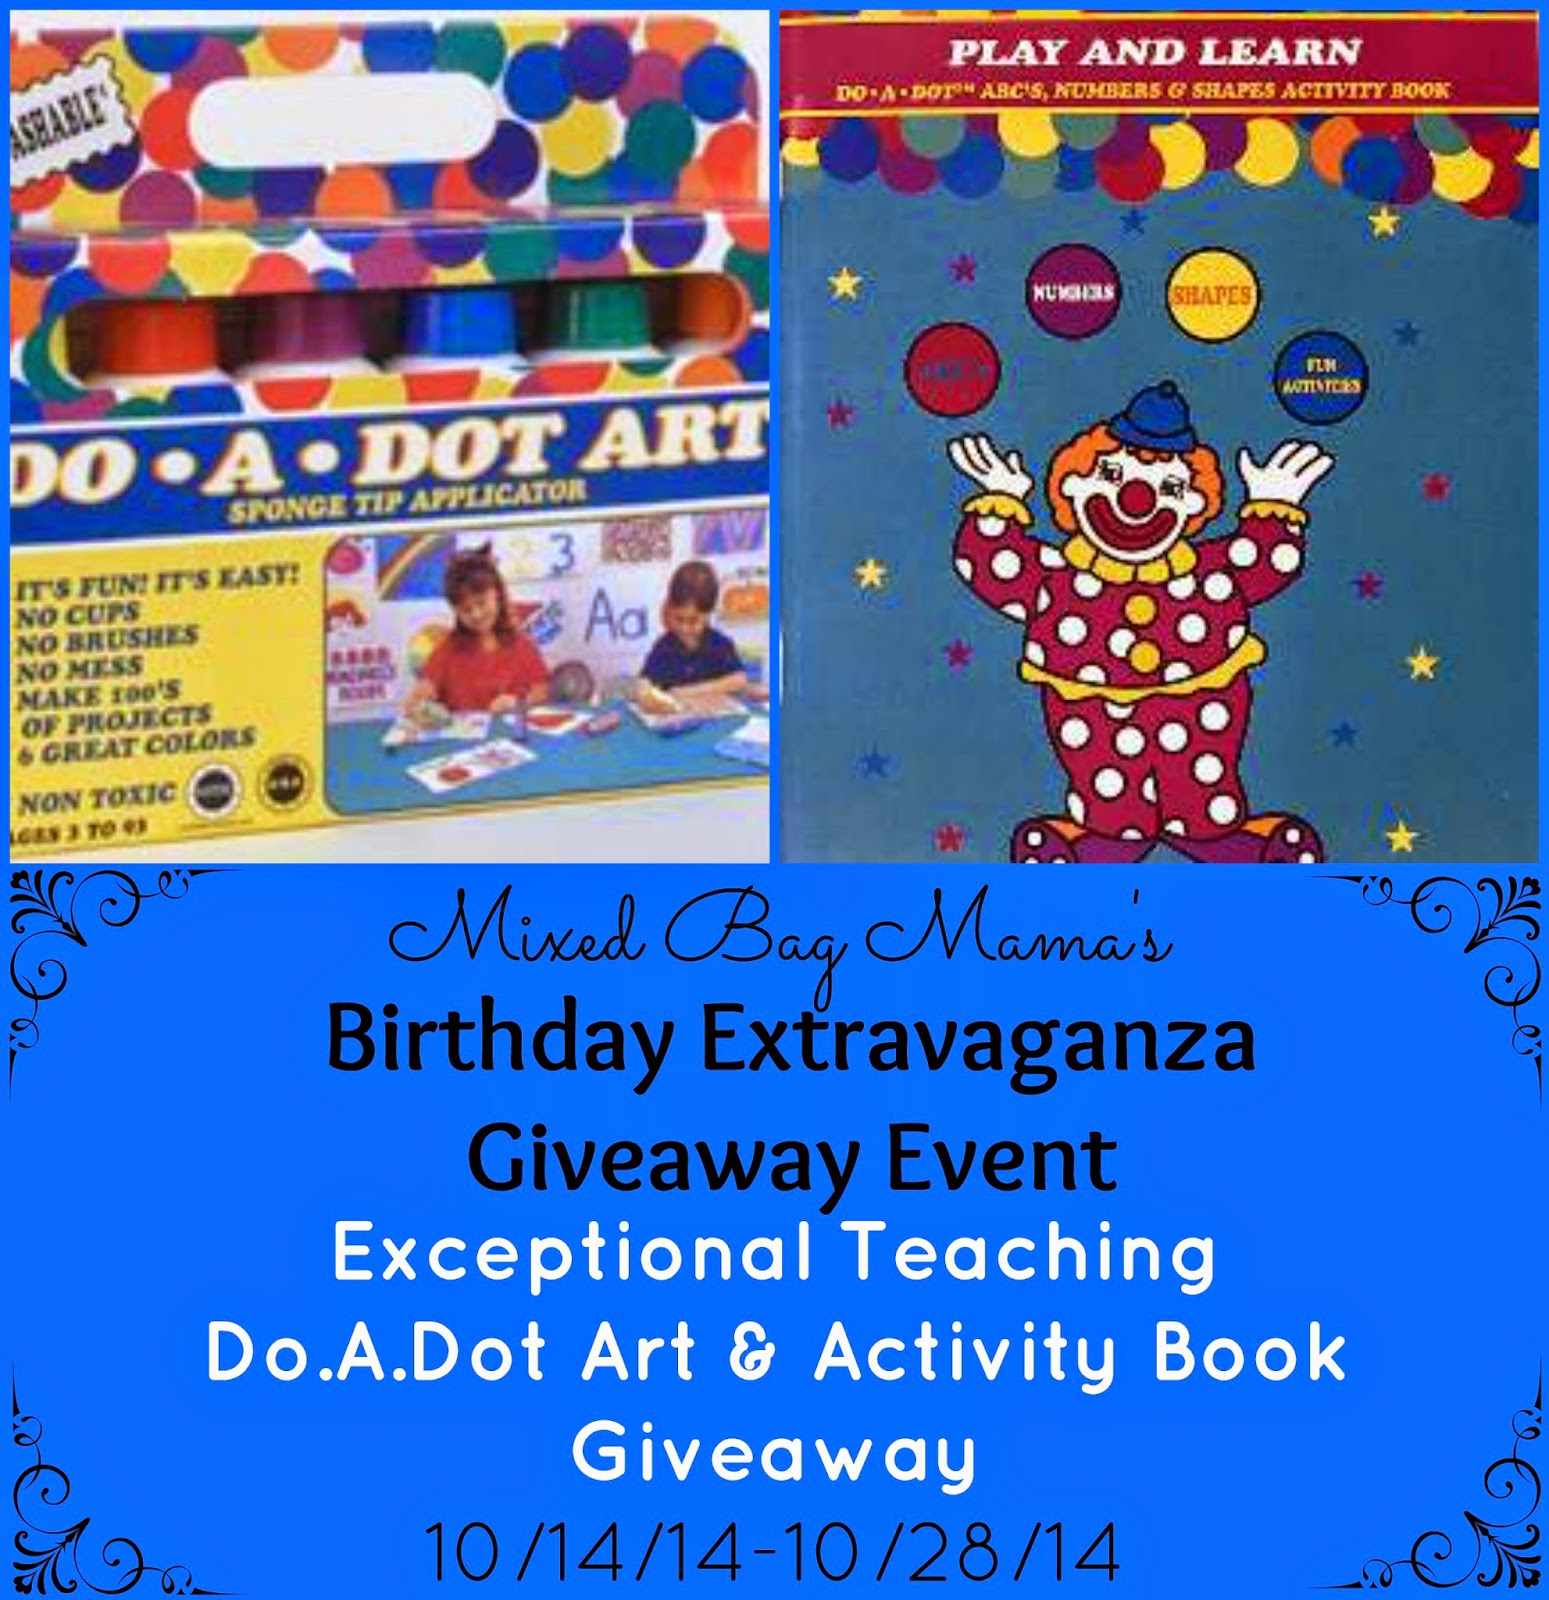 Enter the Exceptional Teaching Do.A.Dot Marker Giveaway. Ends 10/28.